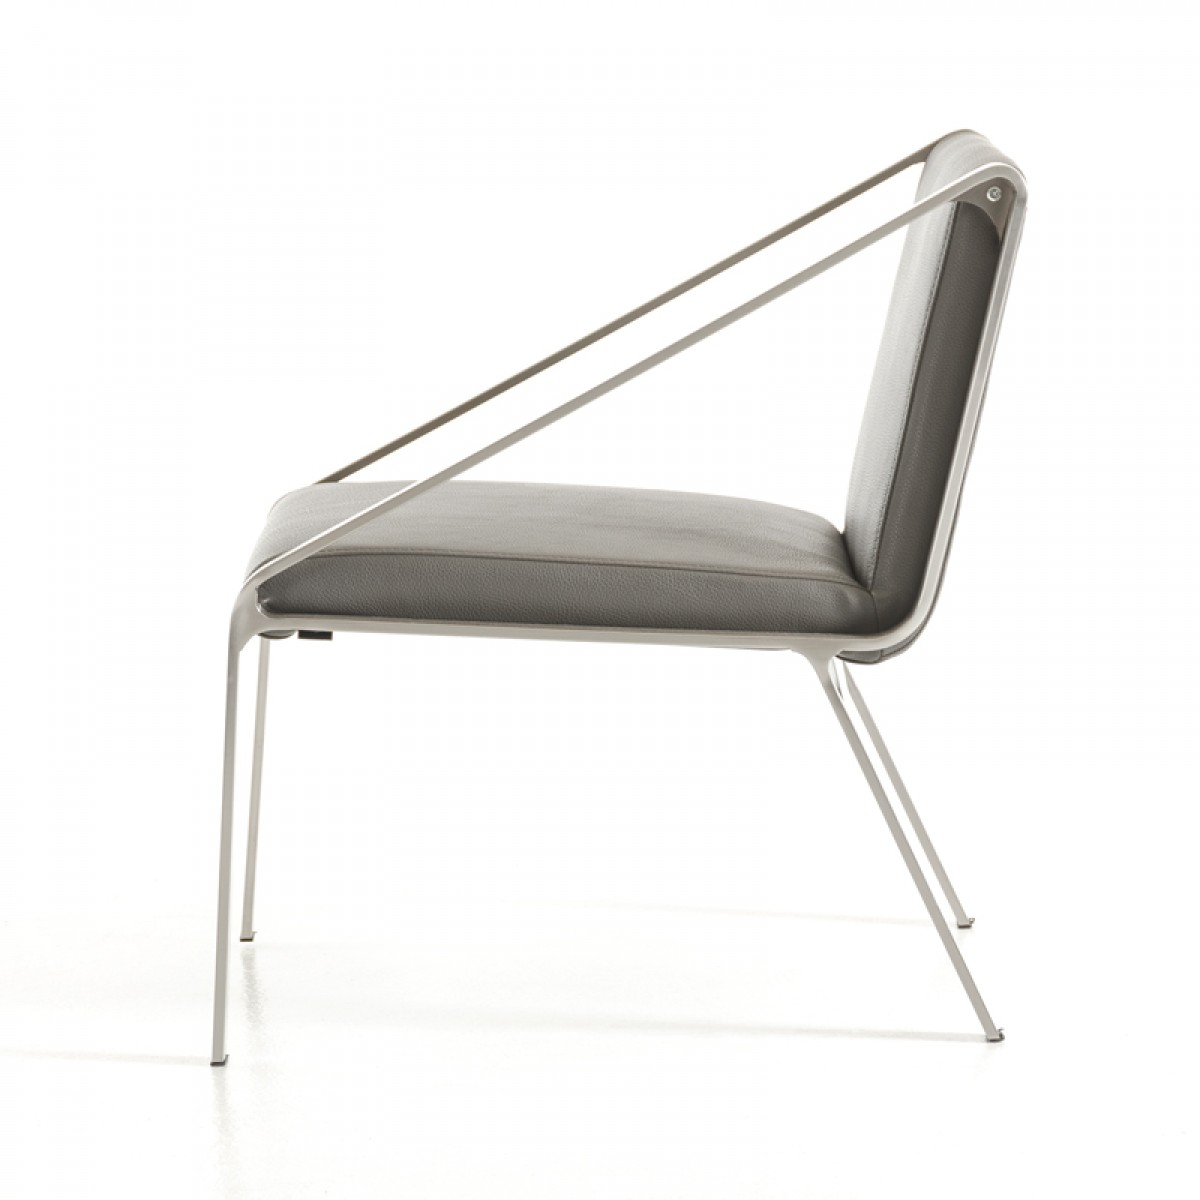 check out the low priced accent chair in gray